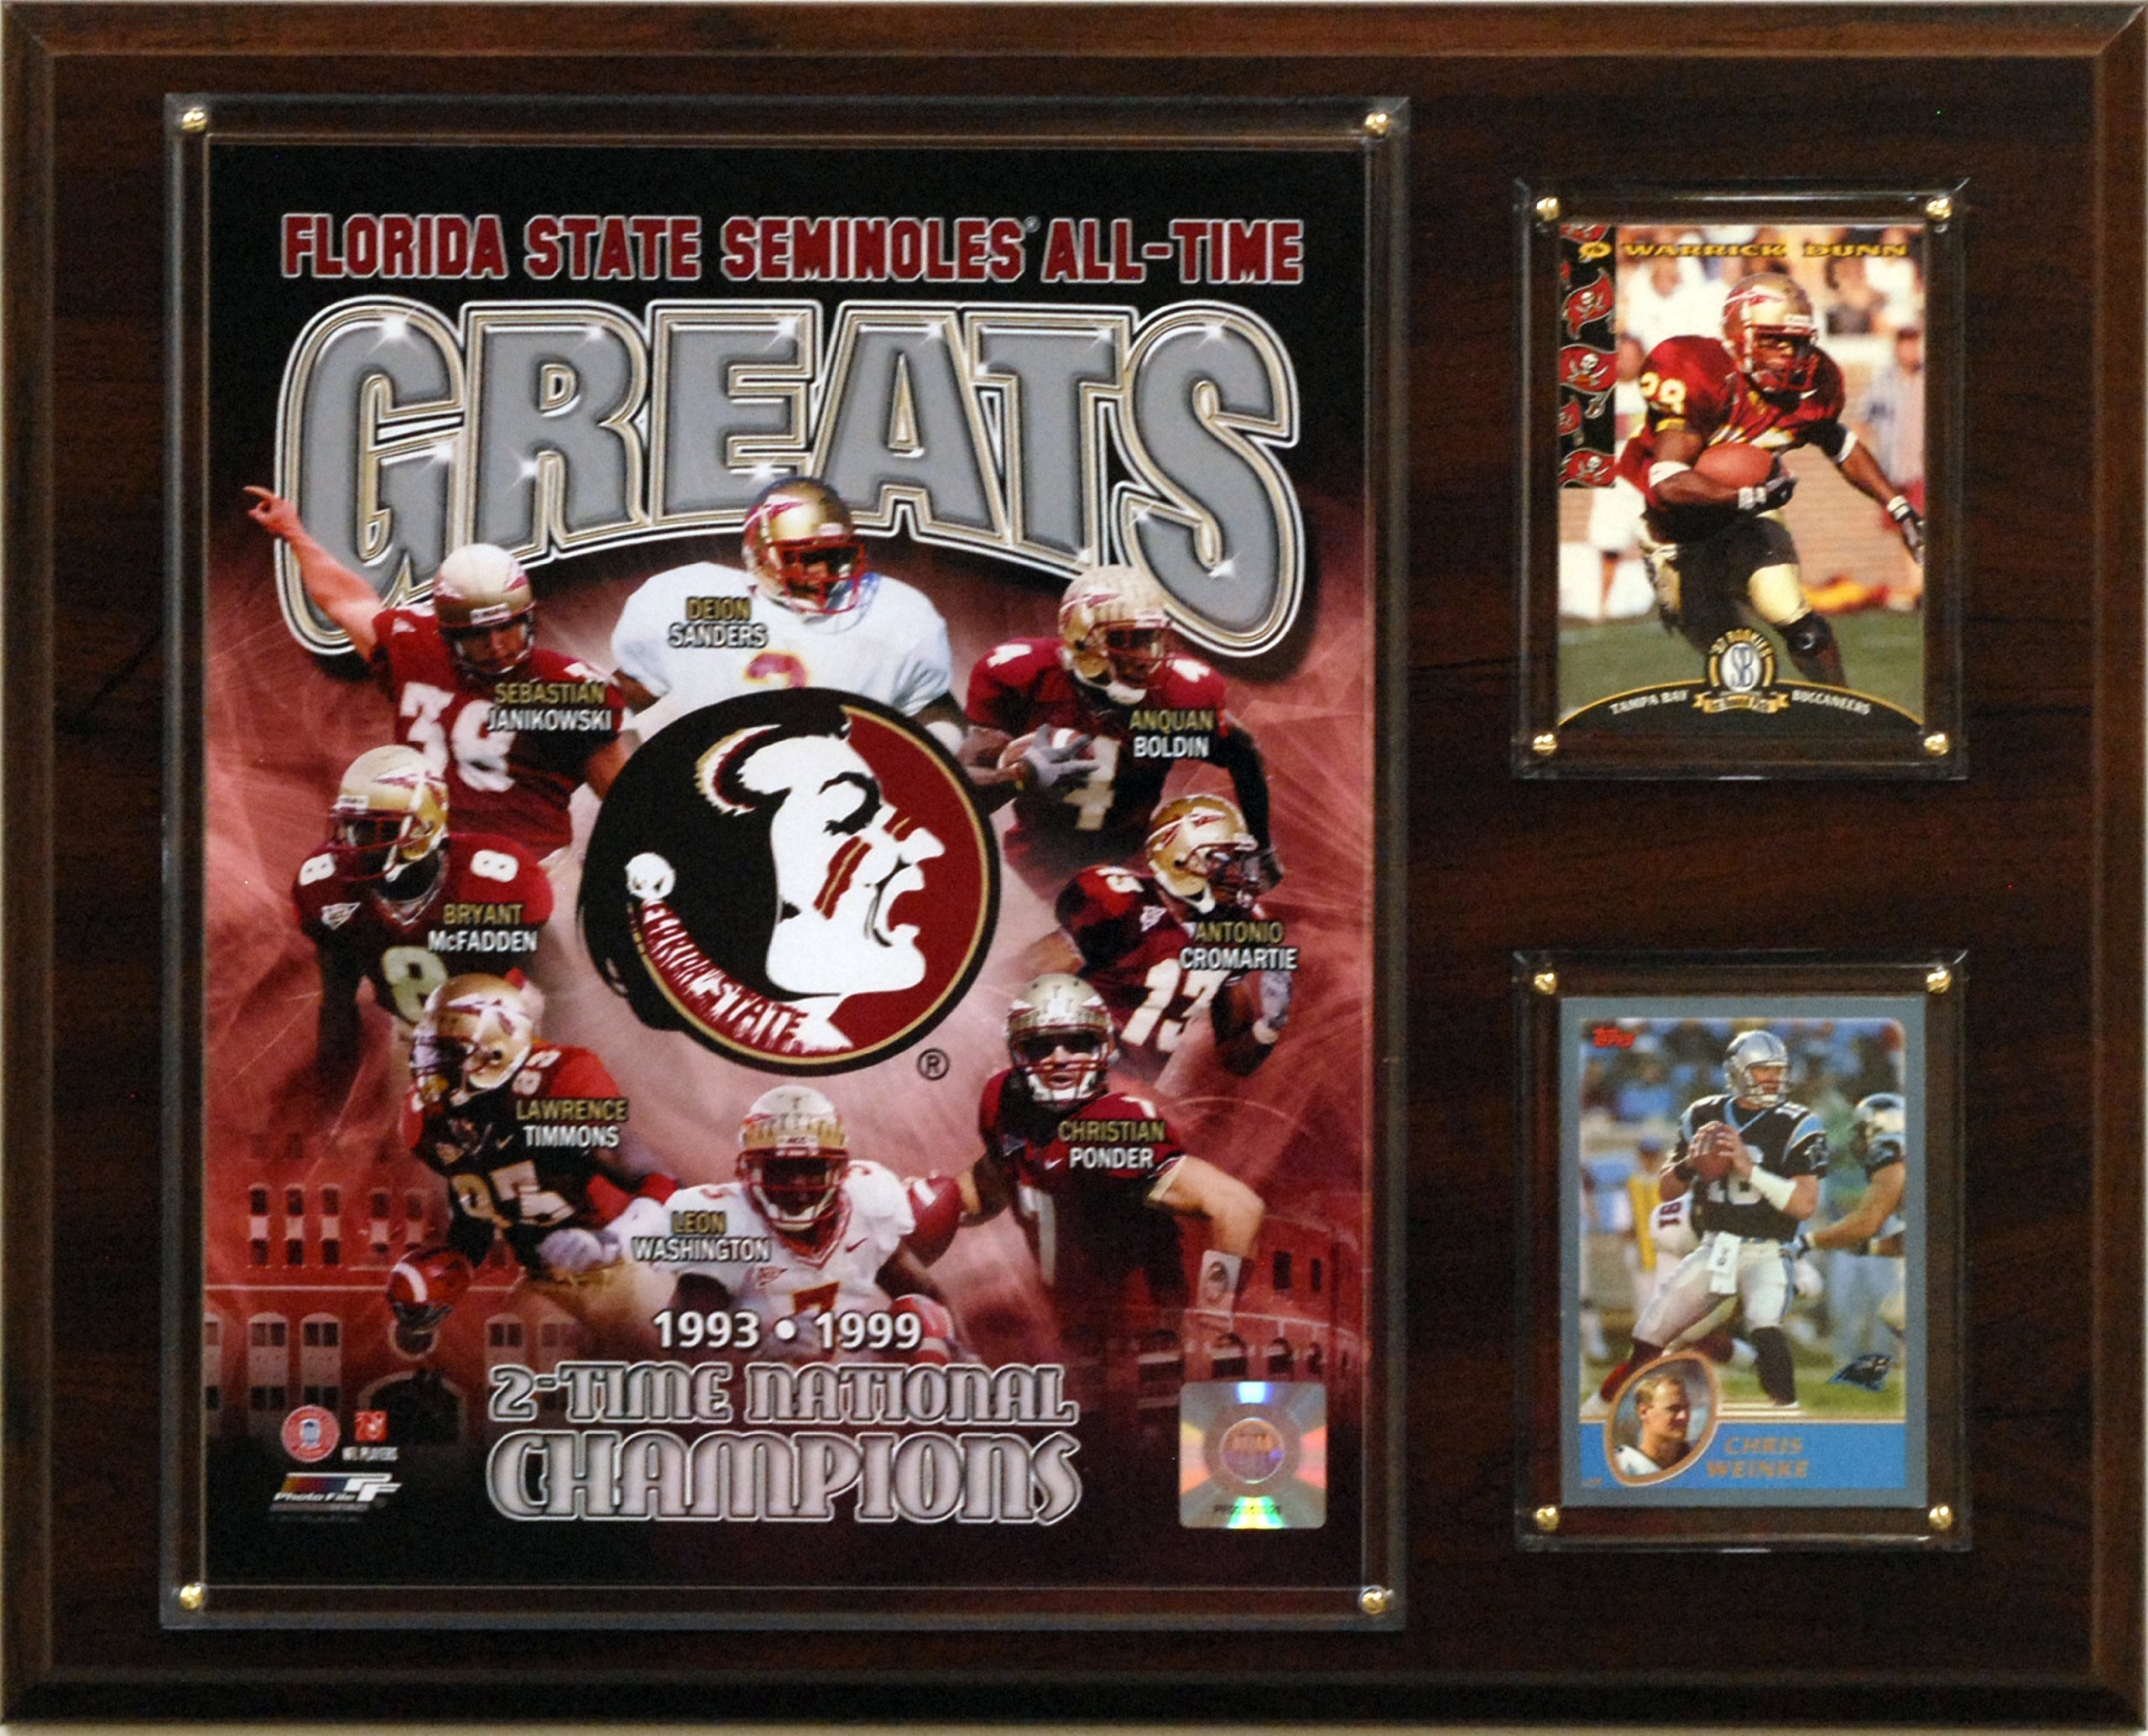 NCAA Football Florida State Seminoles All-Time Greats Photo Plaque